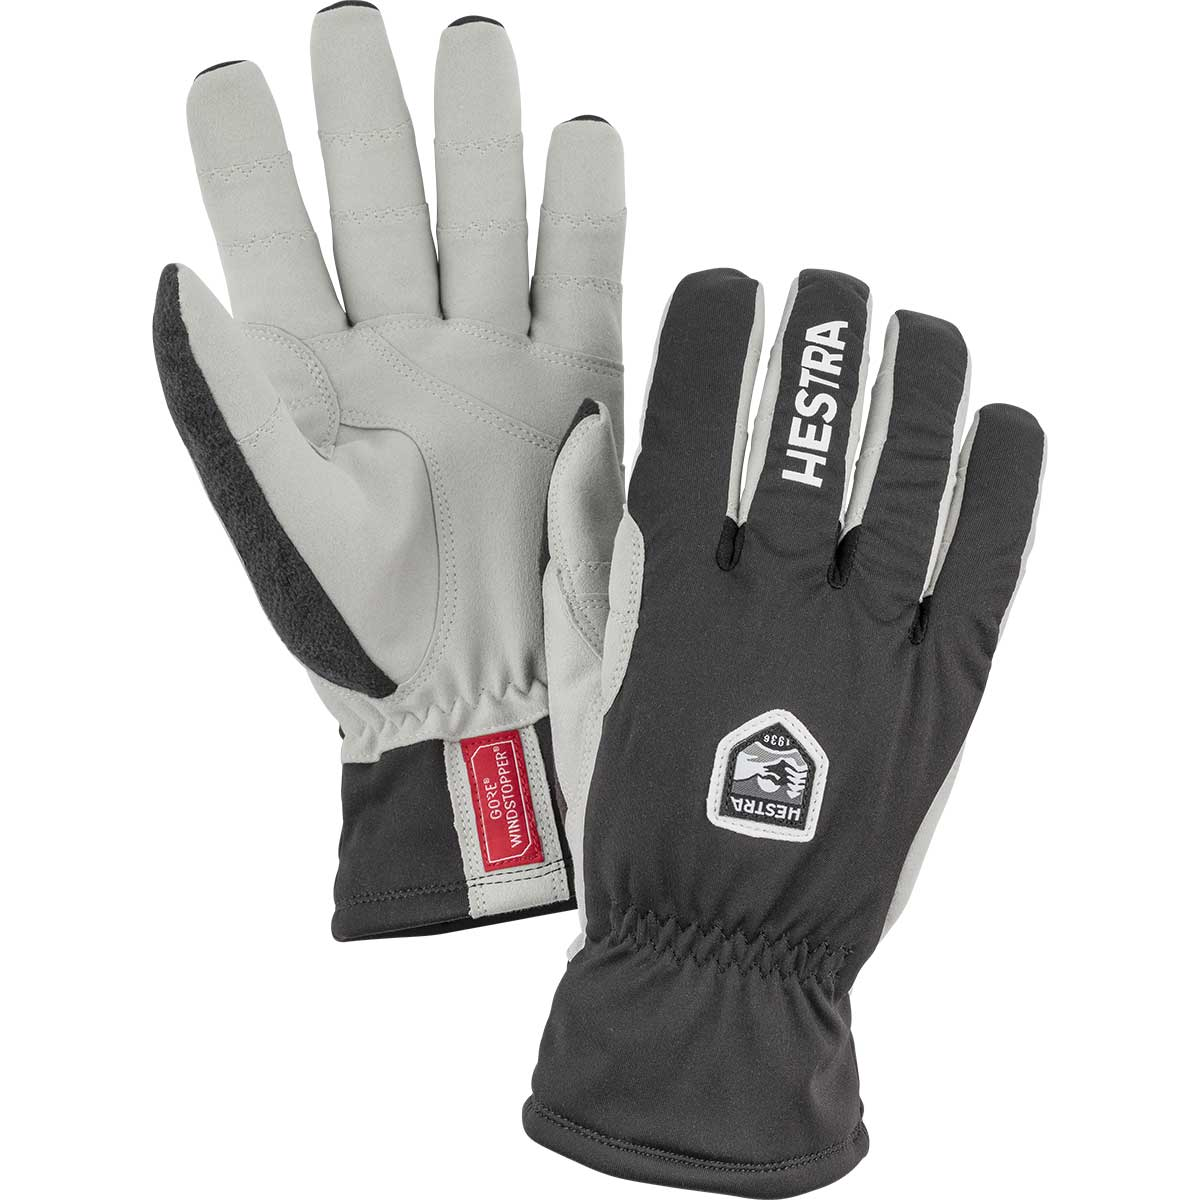 Hestra Windstopper Ergo Grip Touring Glove in black